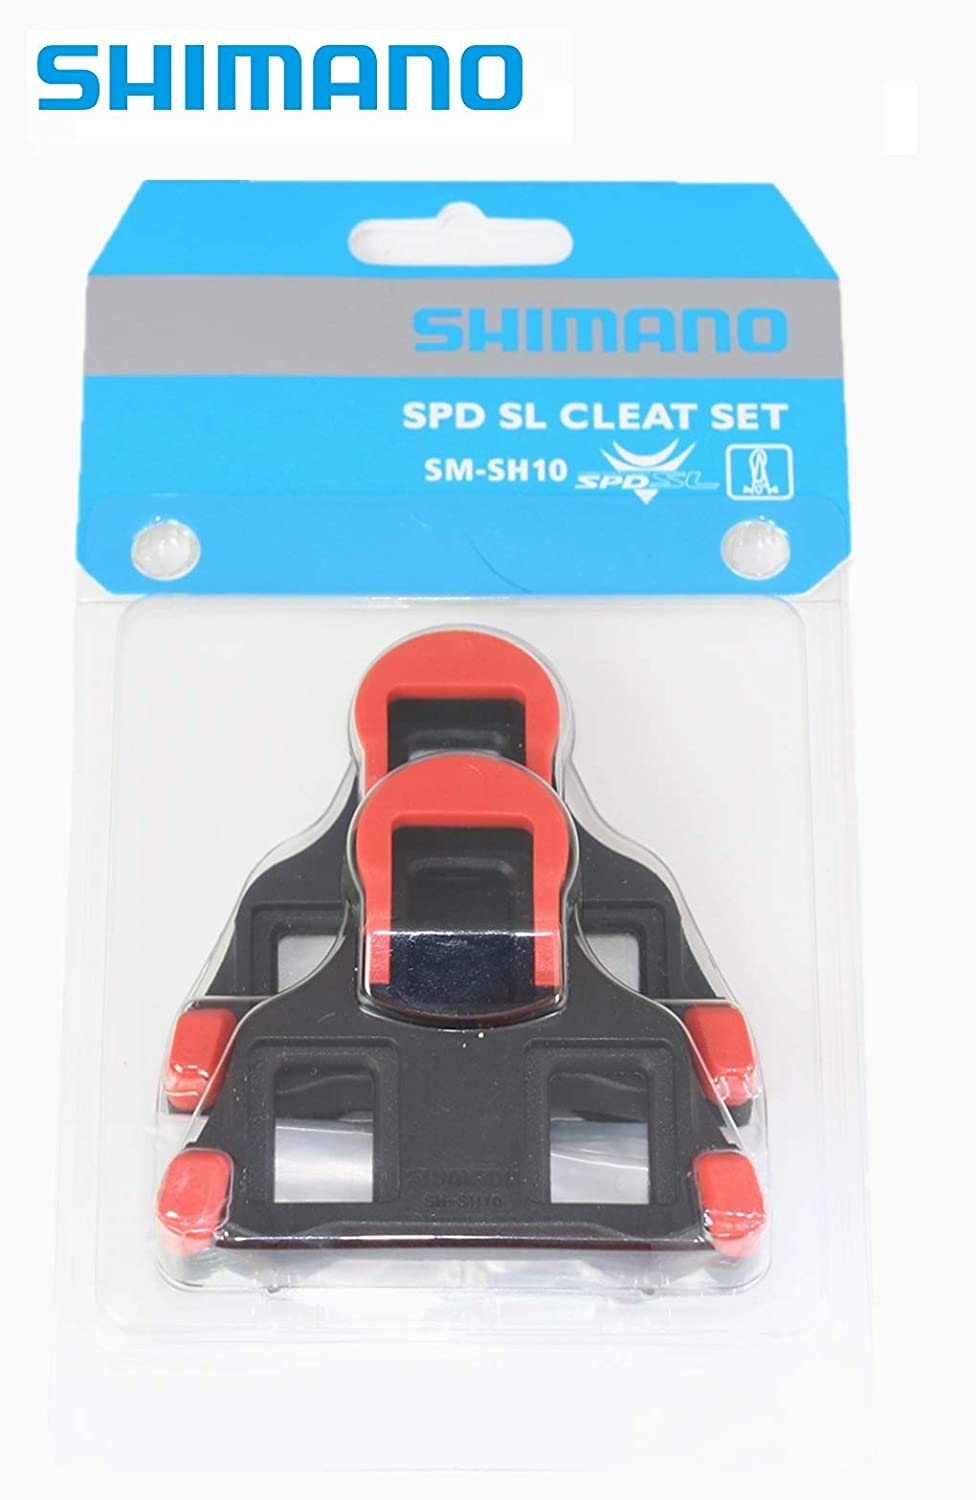 c5b283261c0b Amazon.com : Shimano SPD-SL SM-SH10 Cleat Set for Road (Red Cleat) : Sports  & Outdoors